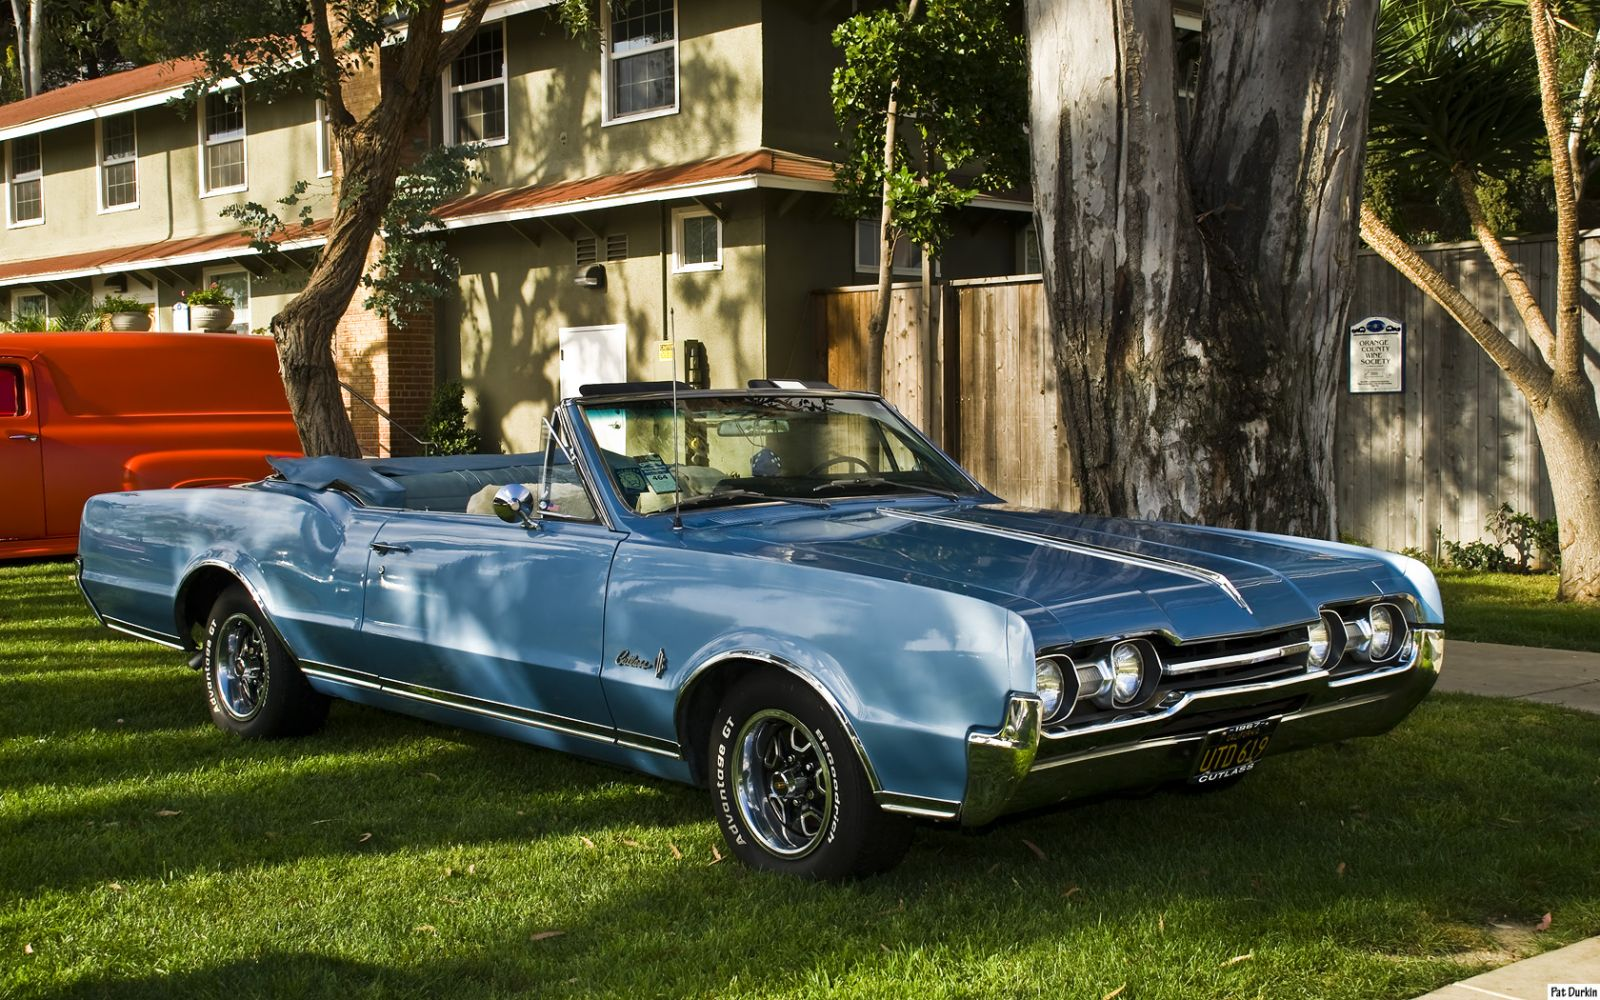 1967 Oldsmobile Cutlass Supreme Convertible With Top Down